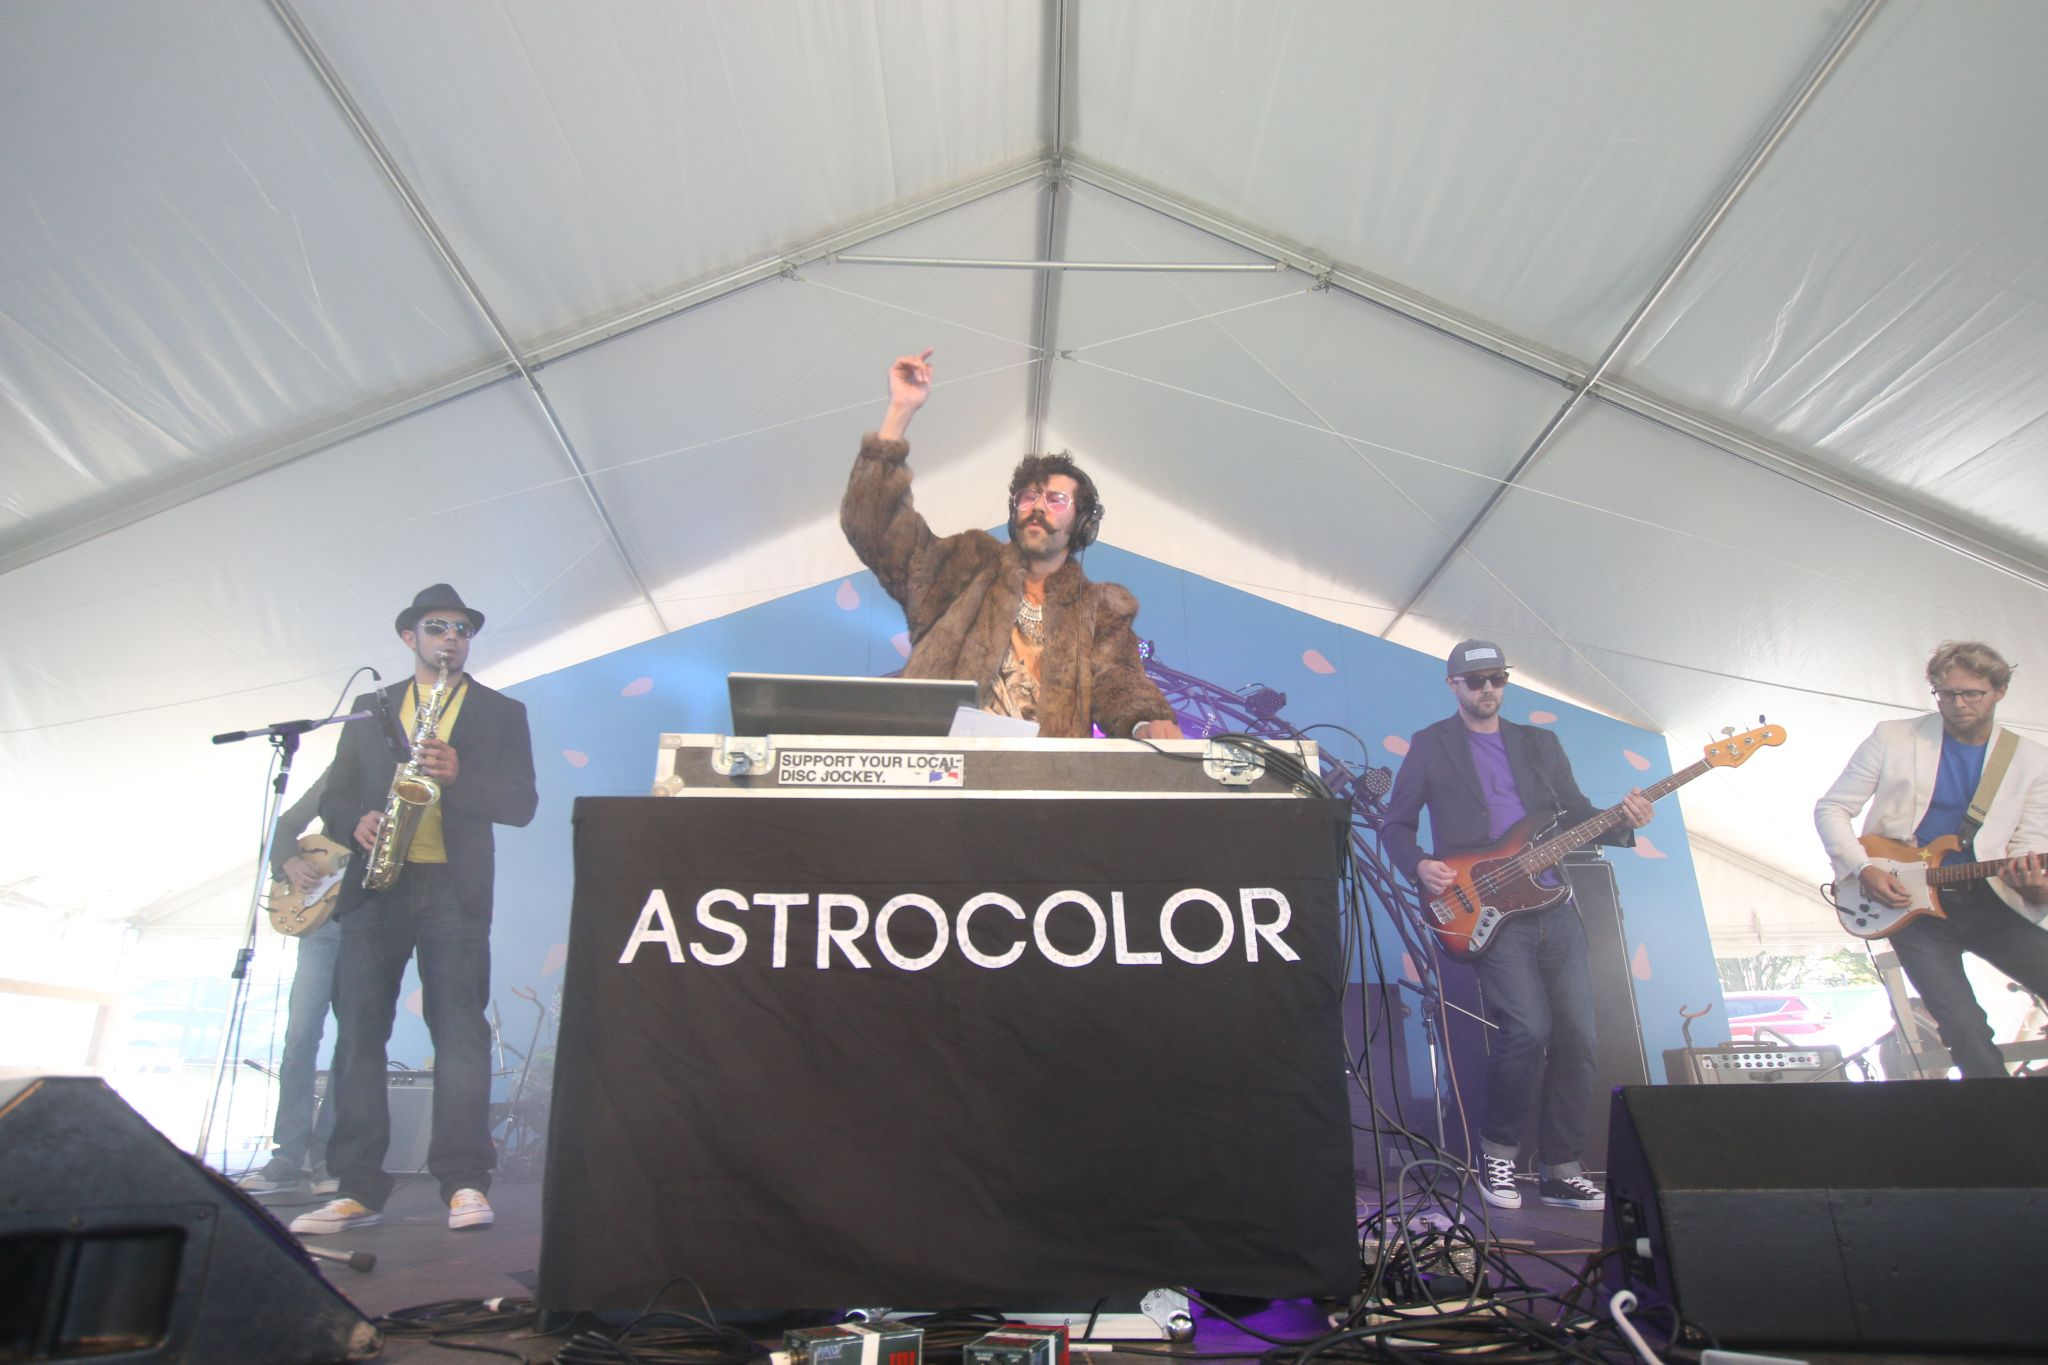 Astrocolor - photo by webmeister Bud